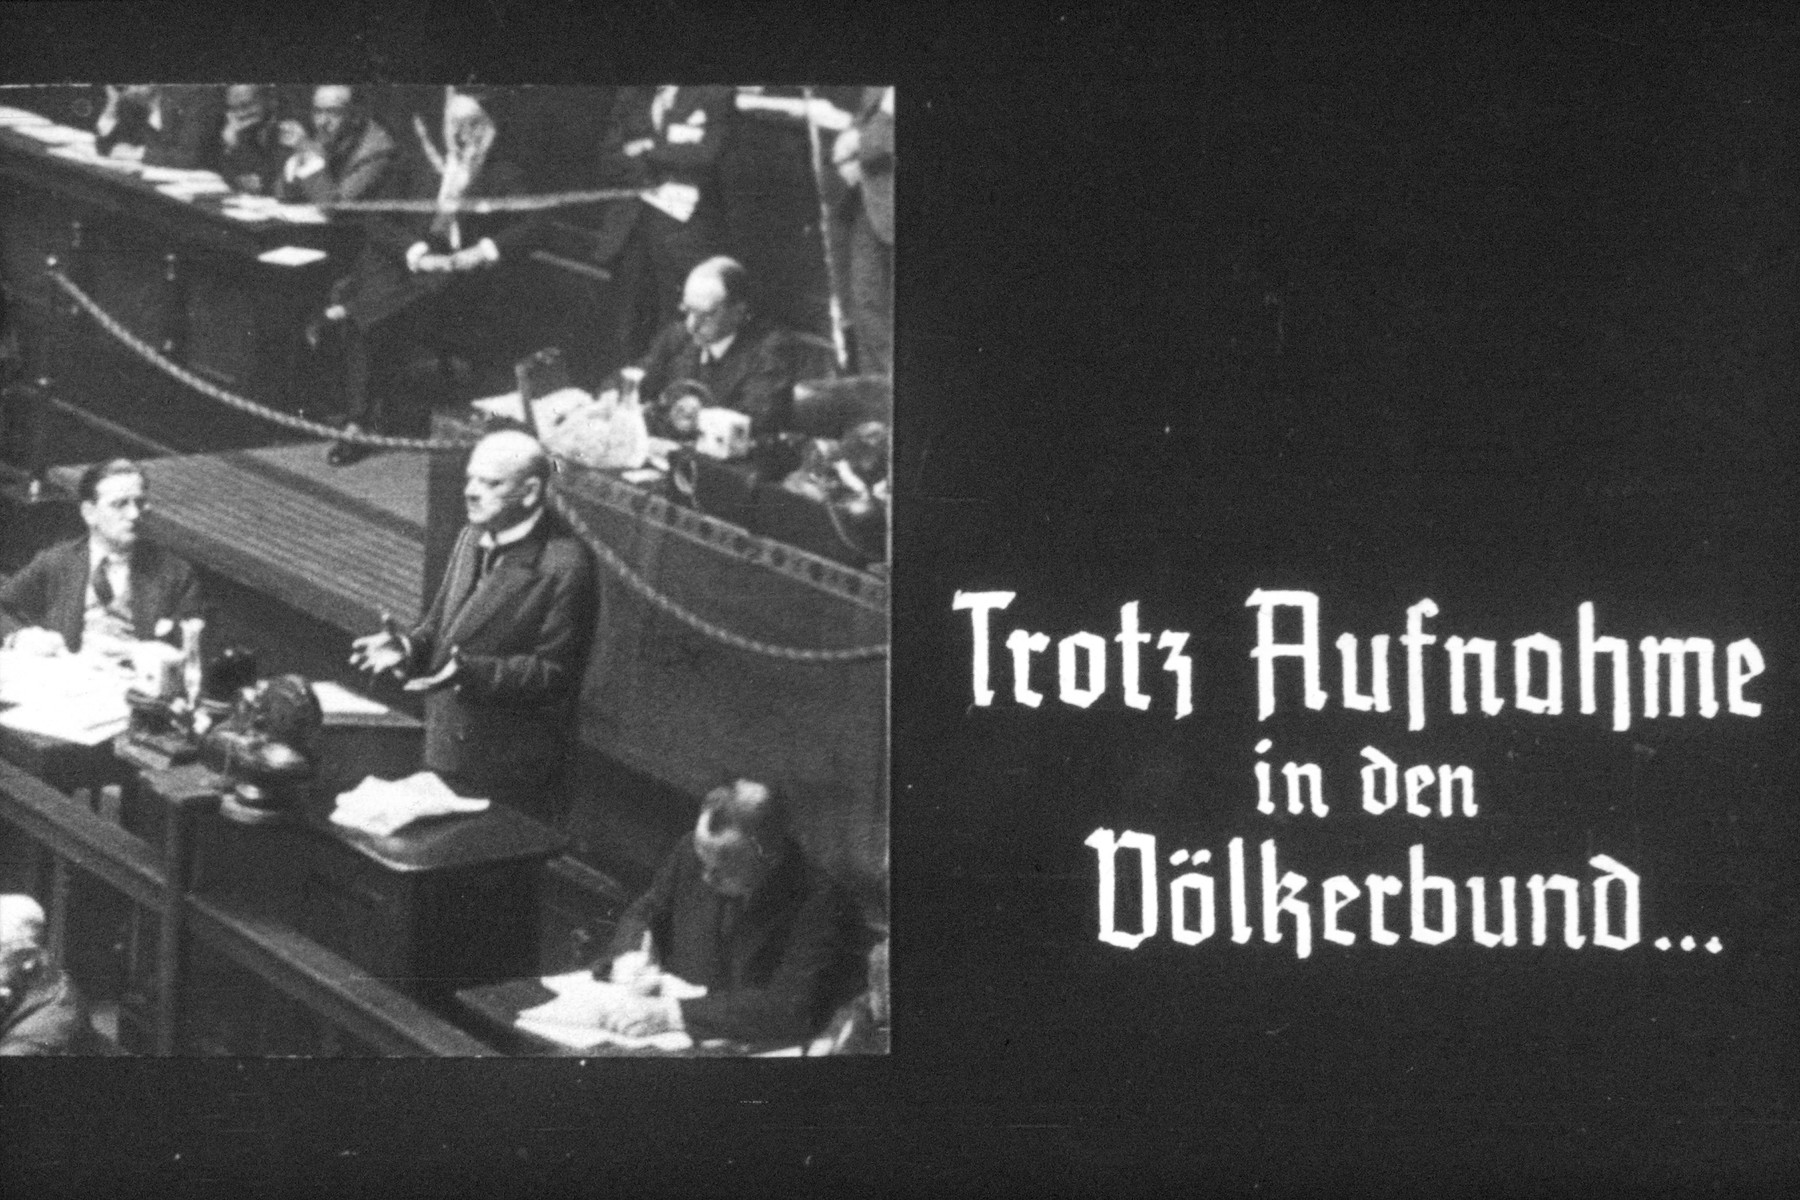 19th slide from a Hitler Youth slideshow about the aftermath of WWI, Versailles, how it was overcome and the rise of Nazism.  Trotz Aufnahme in den Völkerbund...  Despite inclusion in the League of Nations...